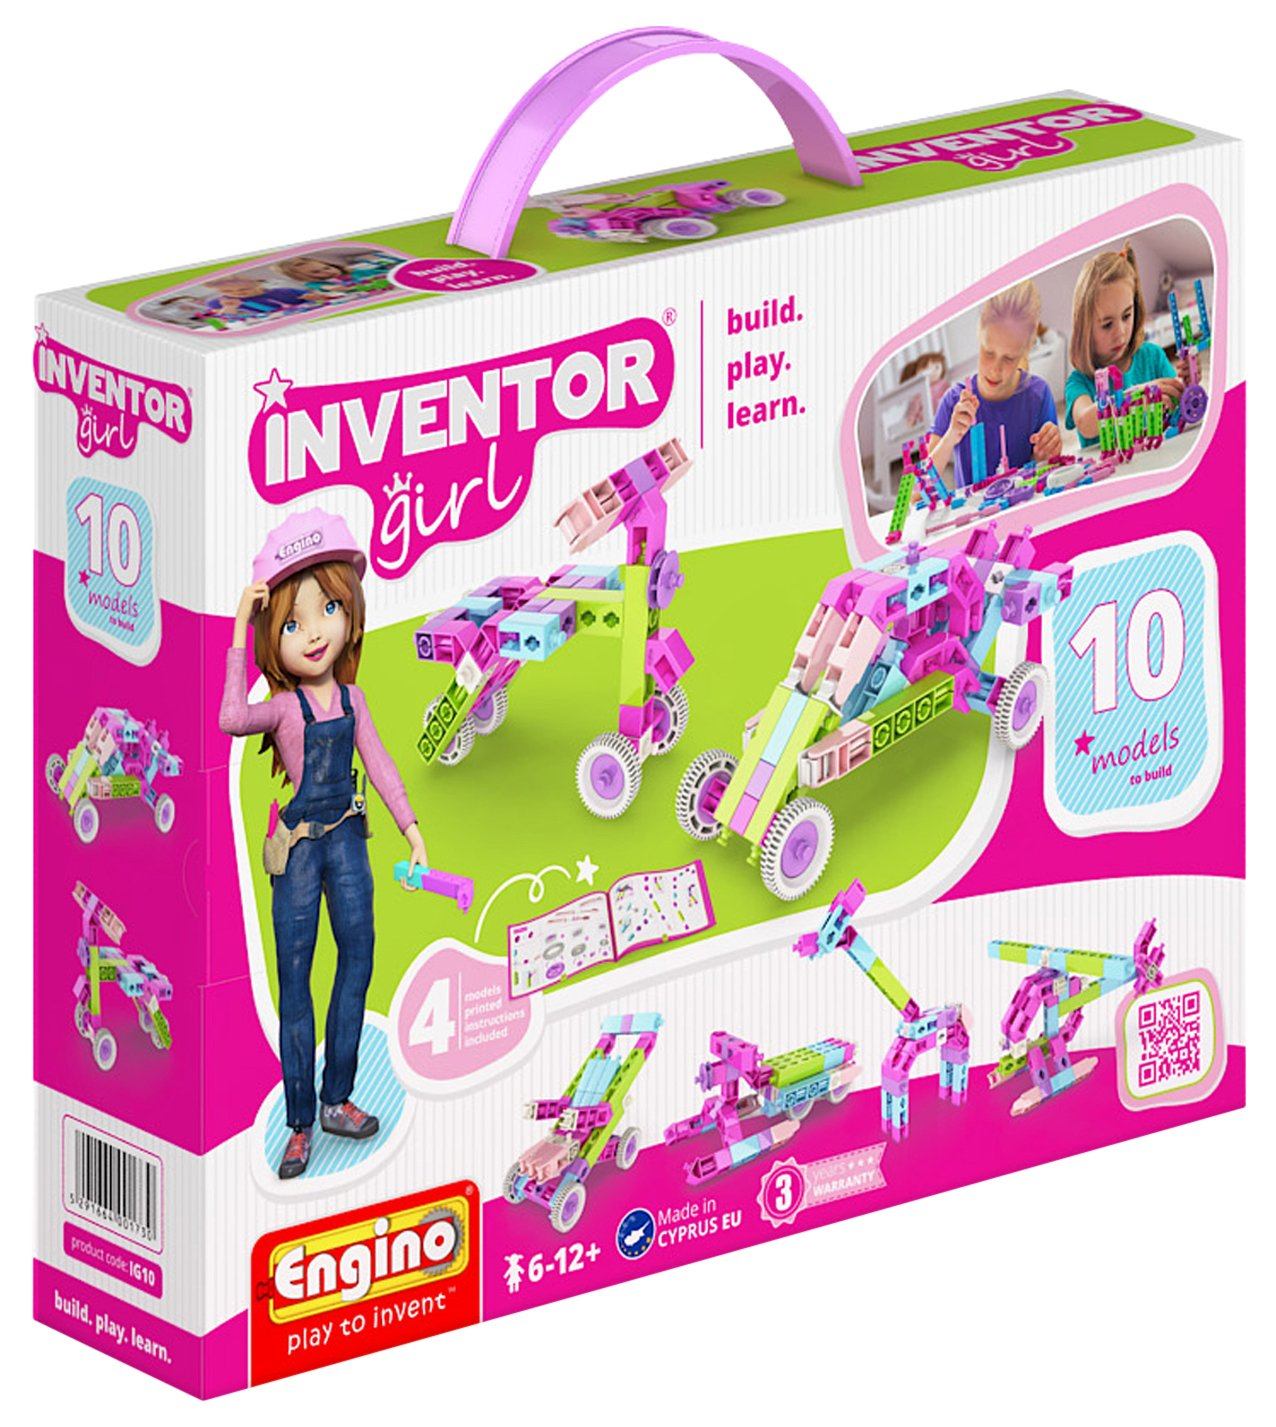 Engino Inventor Girl 10 Models Construction System Review